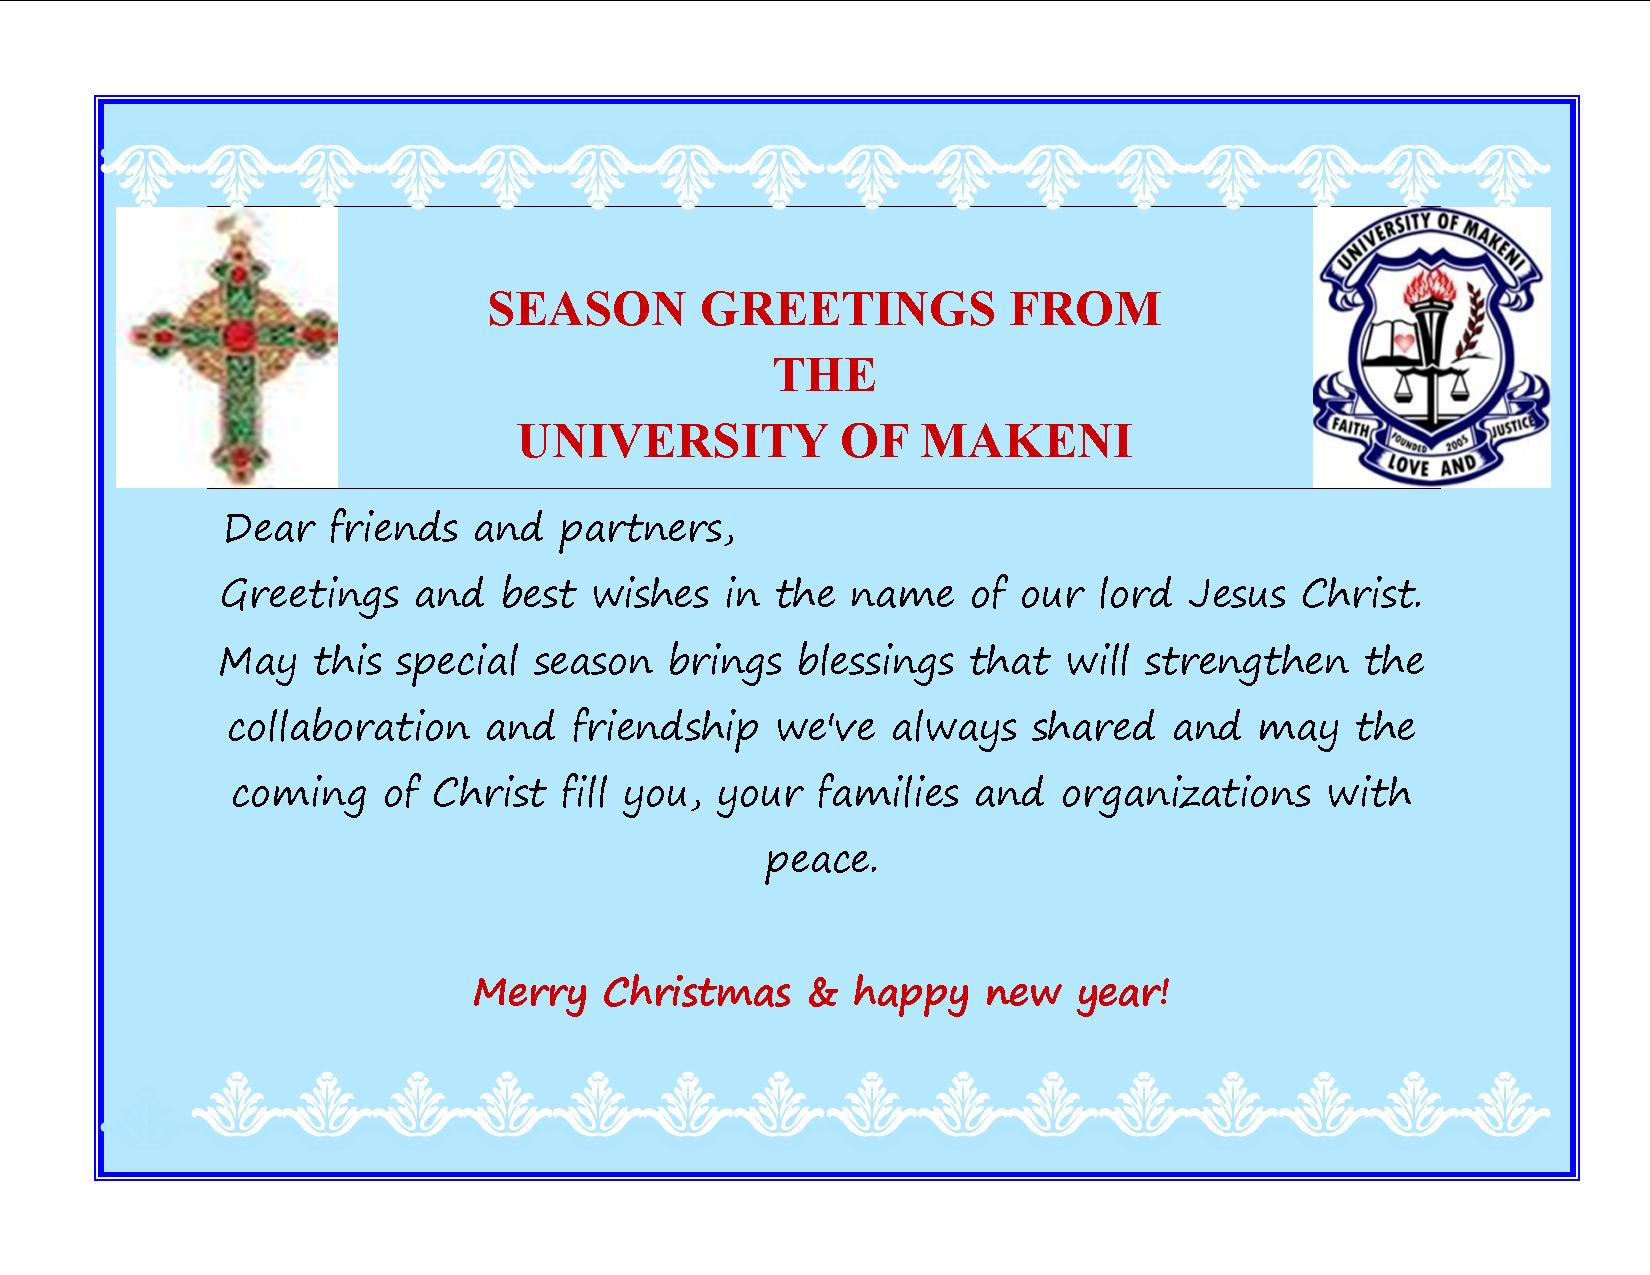 Greetings card from UNIMAK